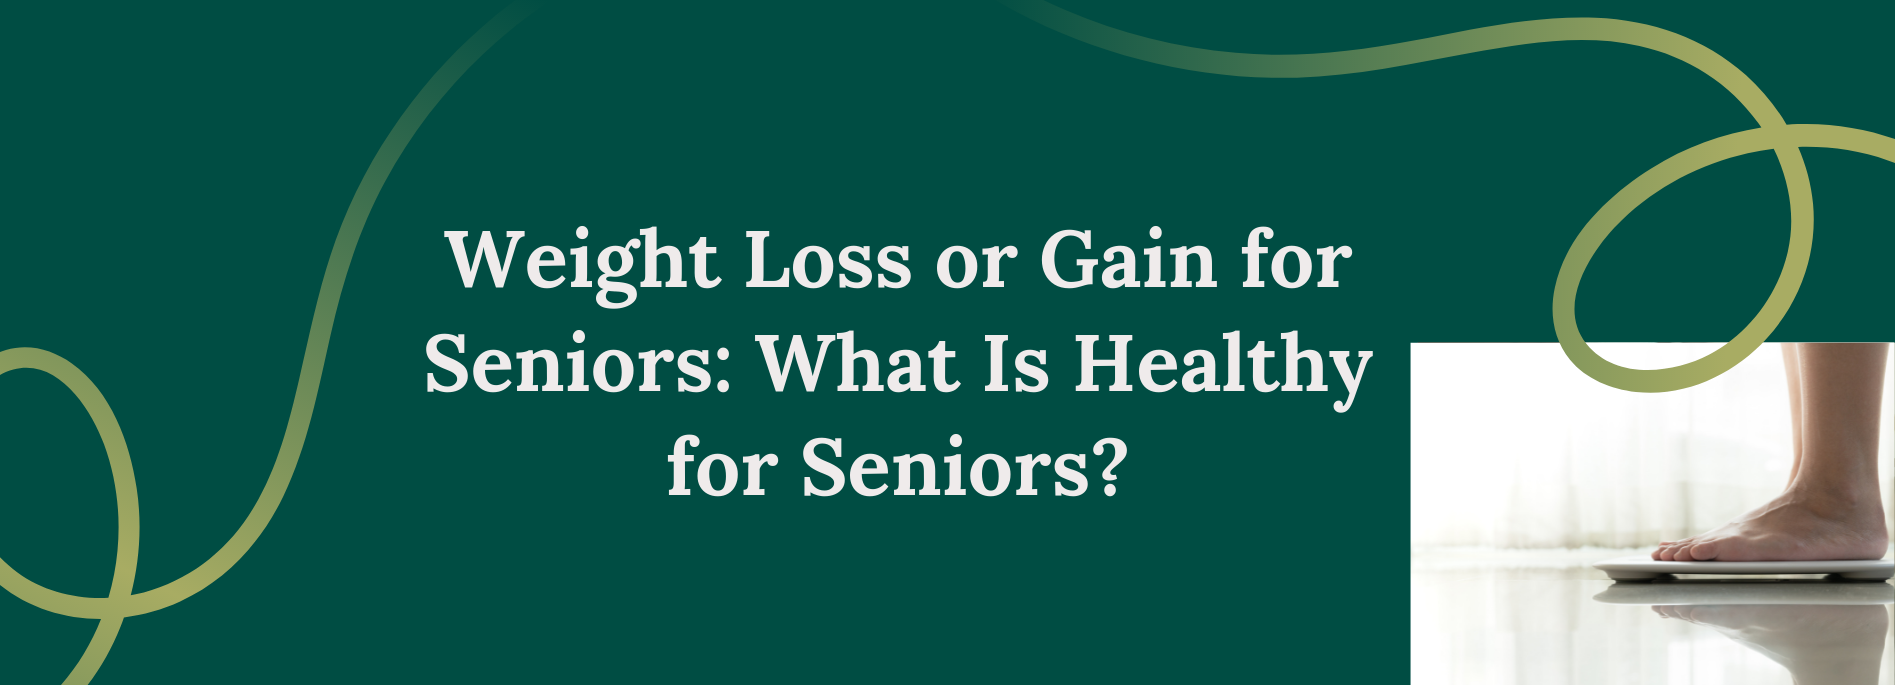 Weight Loss or Gain for Seniors: What Is Healthy for Seniors?